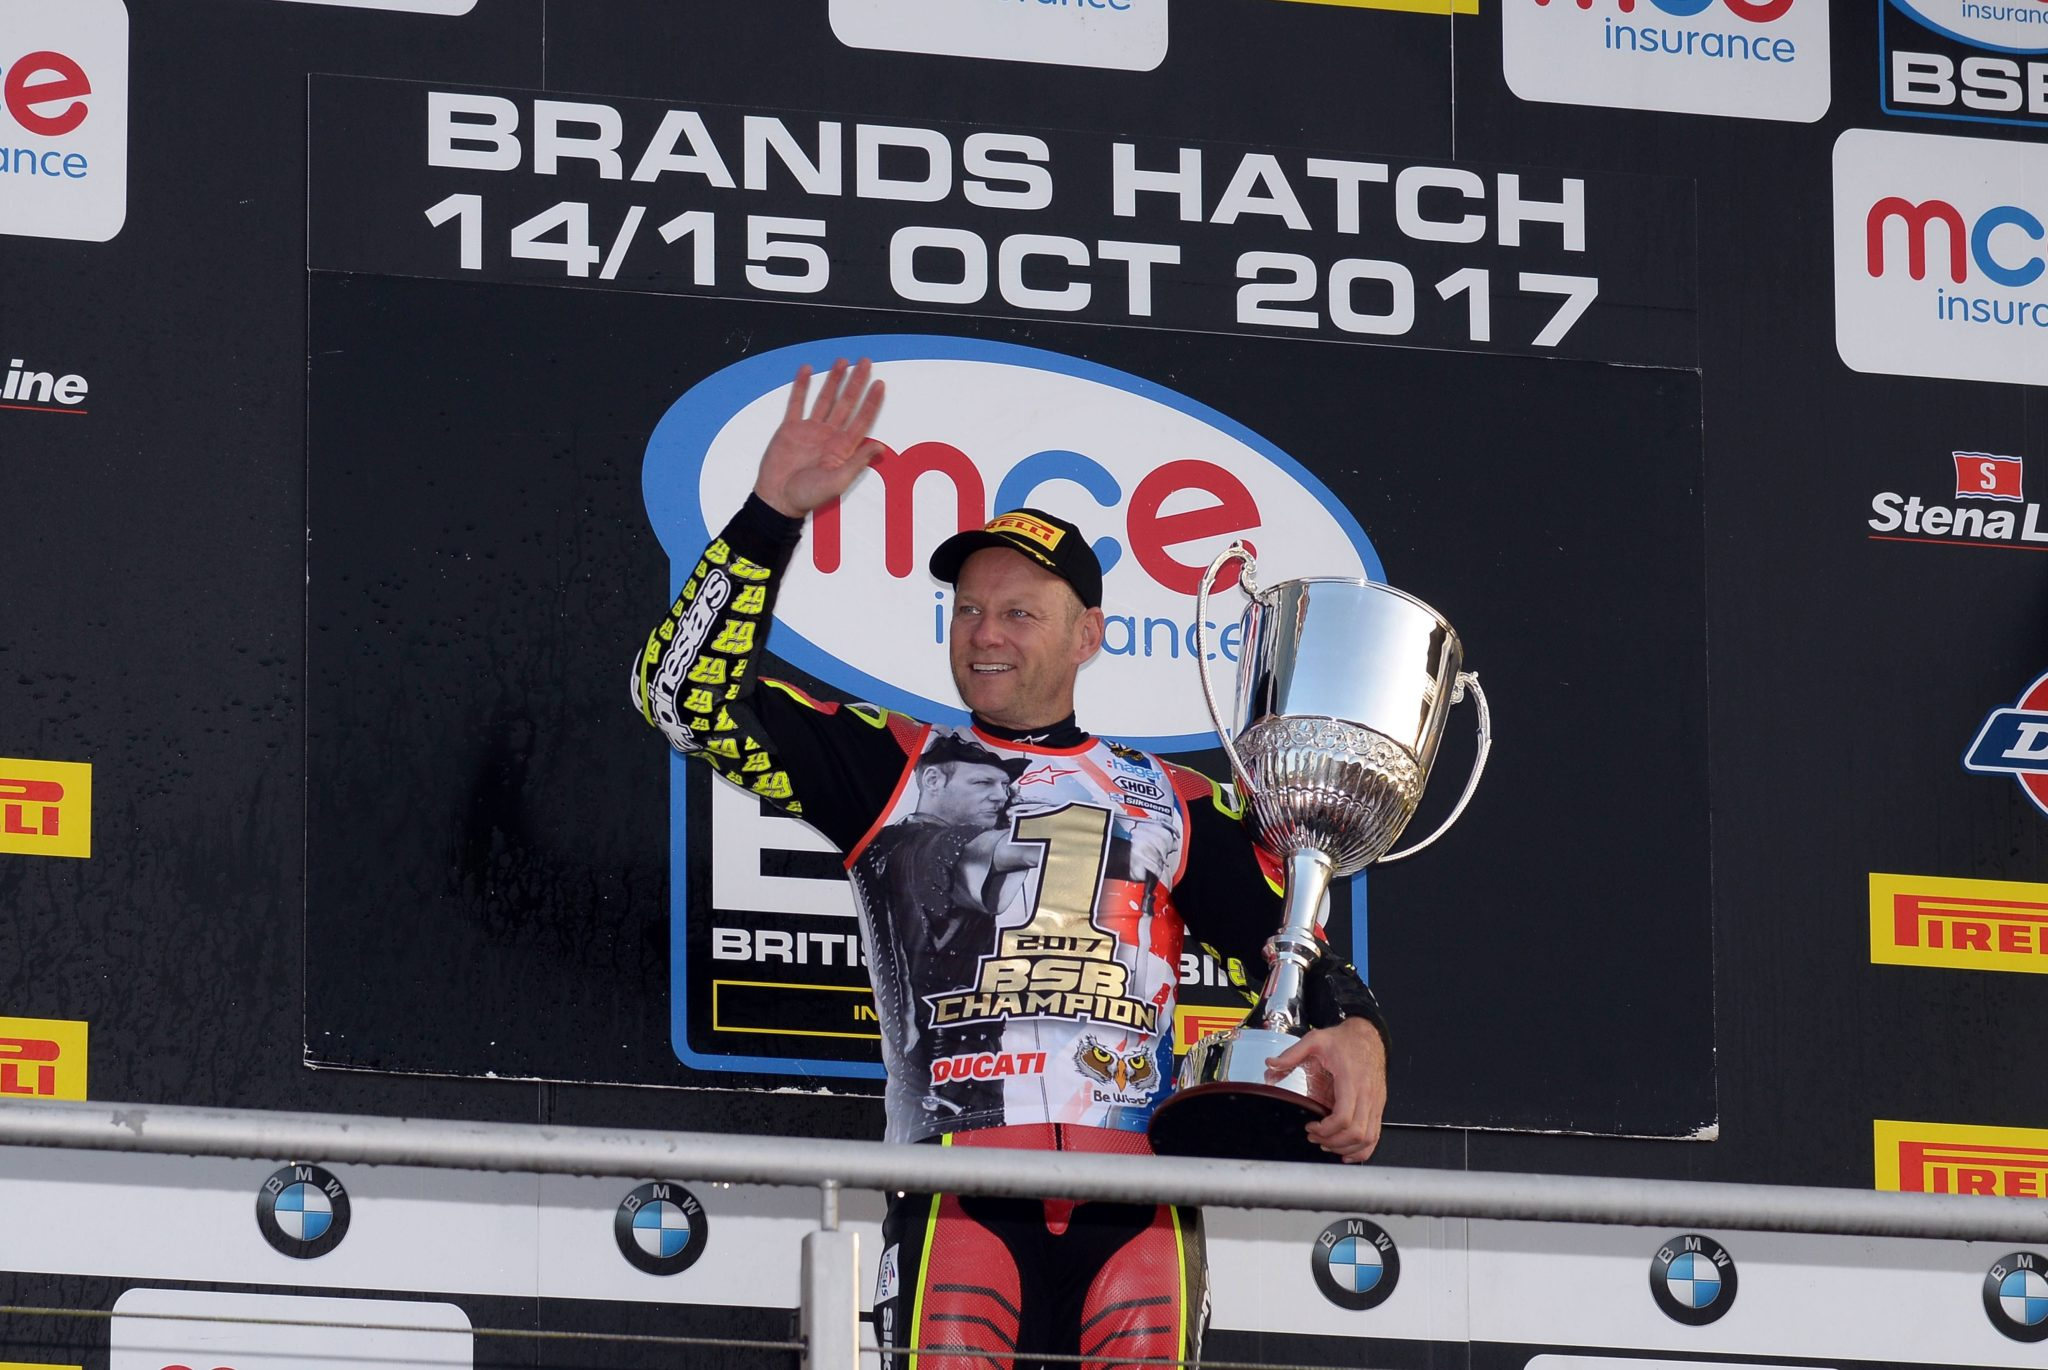 Shakey secures his sixth BSB championship title, credit Jon Jessopp Photography